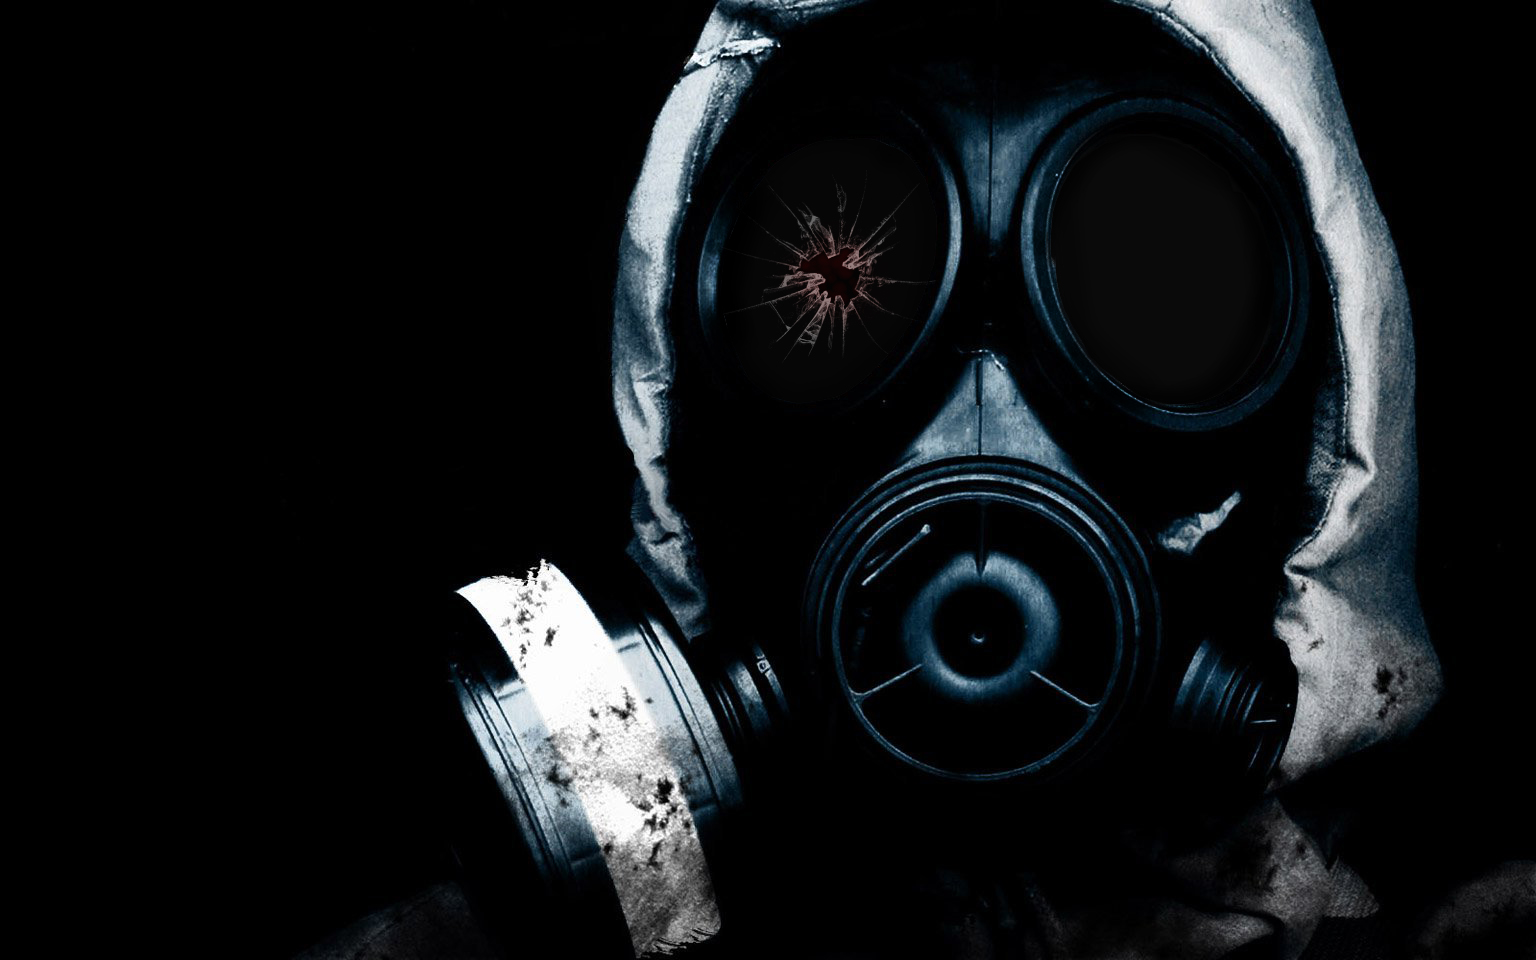 Gas mask art id 81305 art abyss for Dark house music